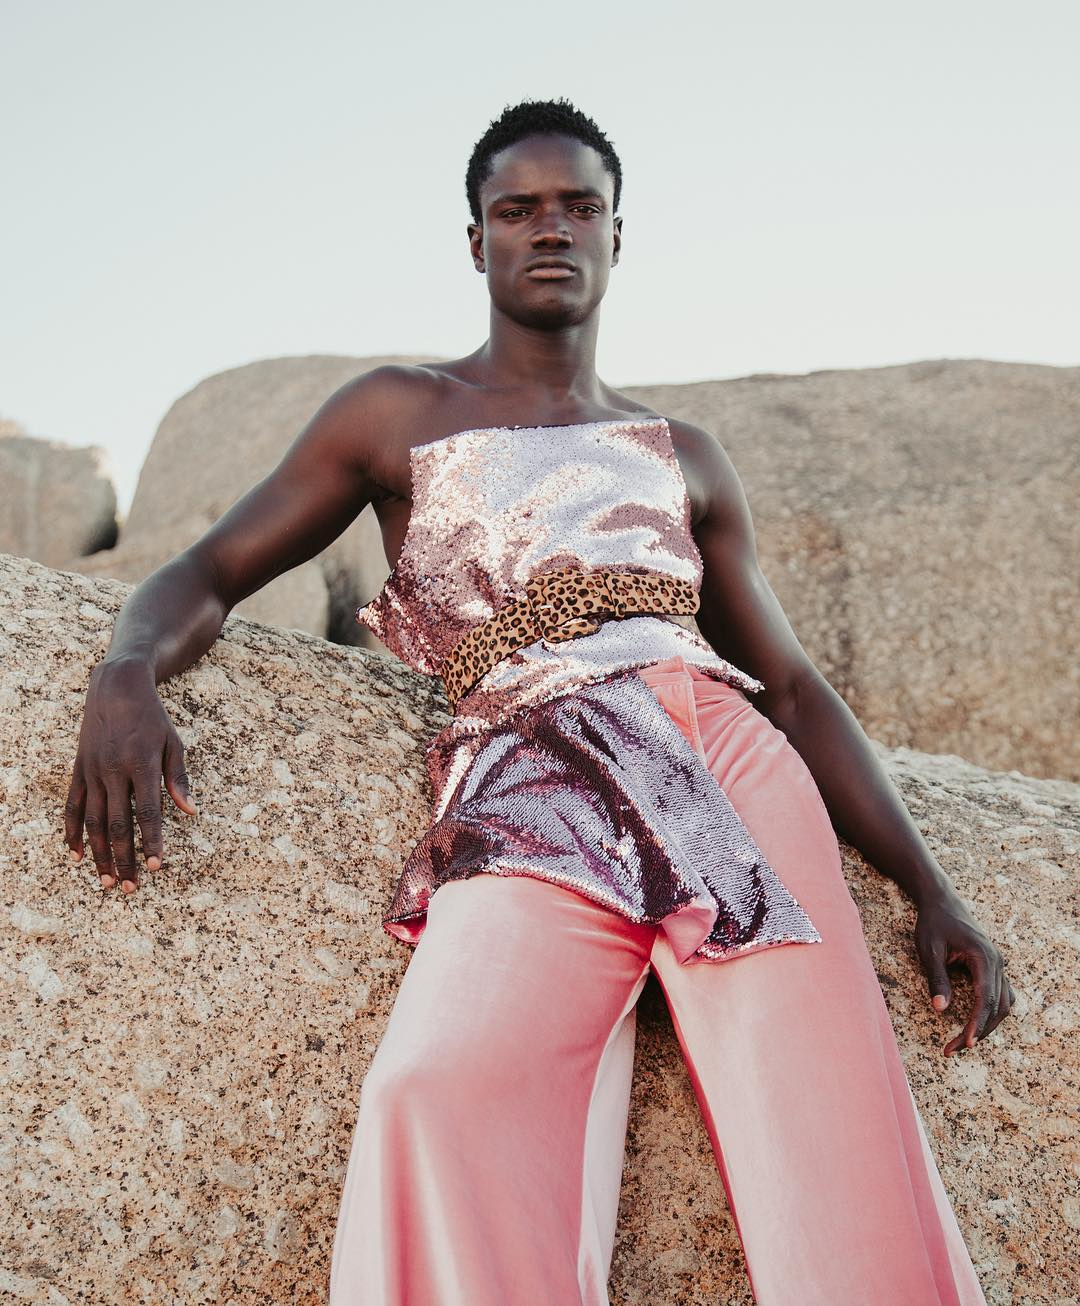 Designer Nao Serati's Gender-bending Garments - The South African designer is one of the many young creatives shaking the table in the Rainbow Nation. Get to know Nao Serati in Young Bloods 03: Johannesburg.